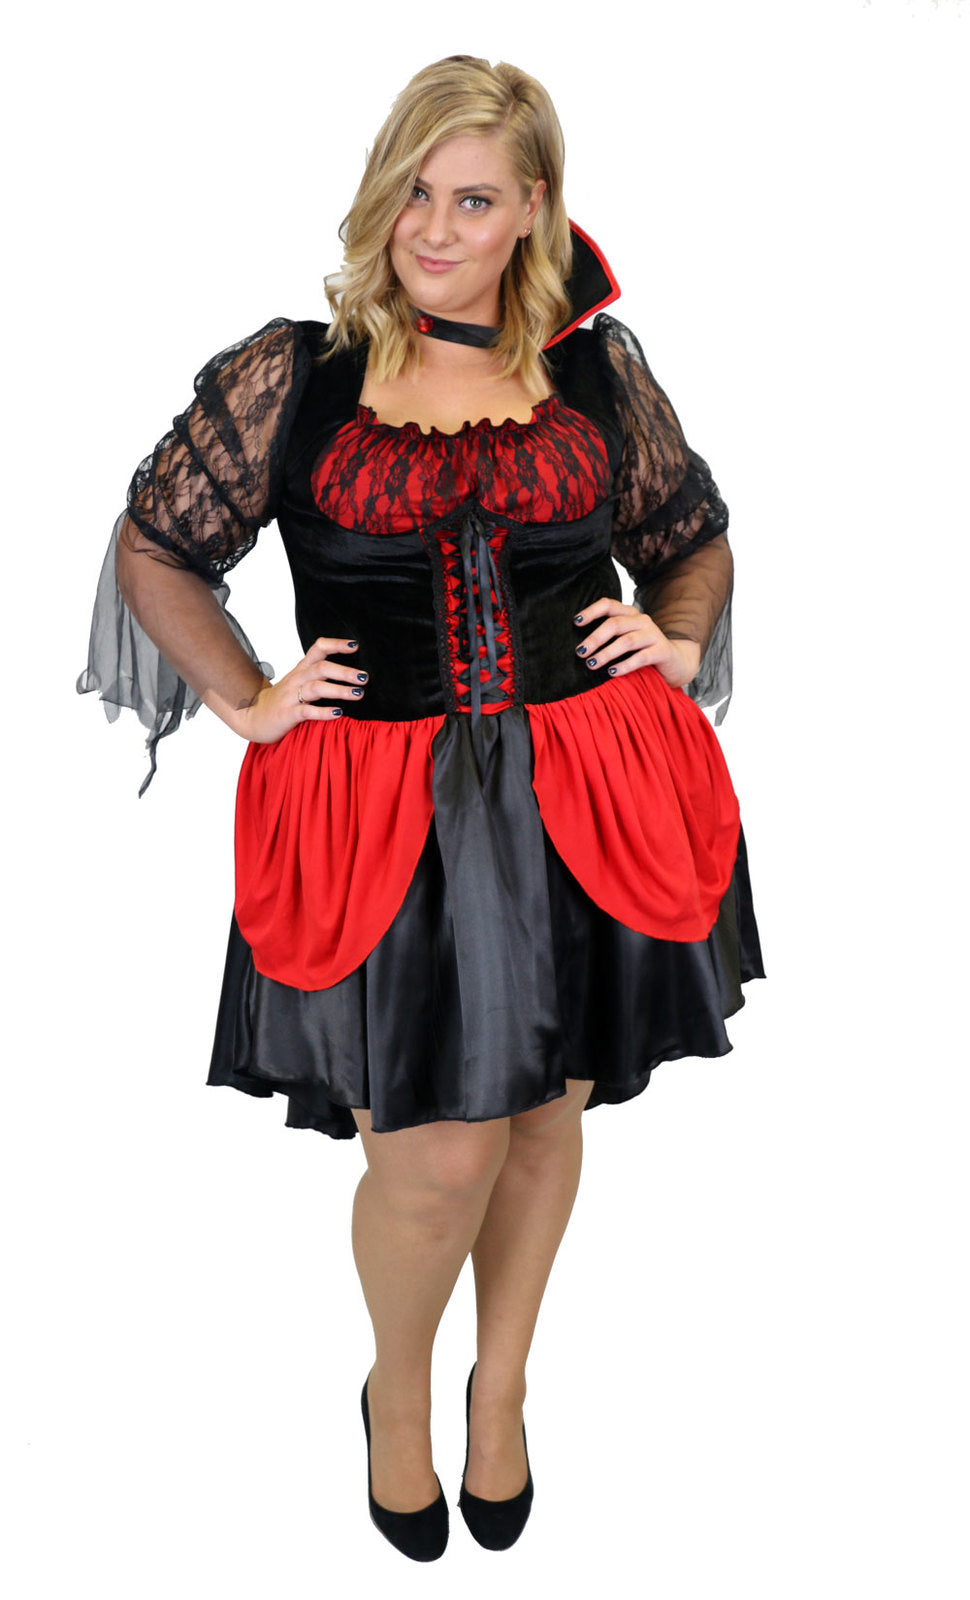 Hot Vampiress Costume - Buy